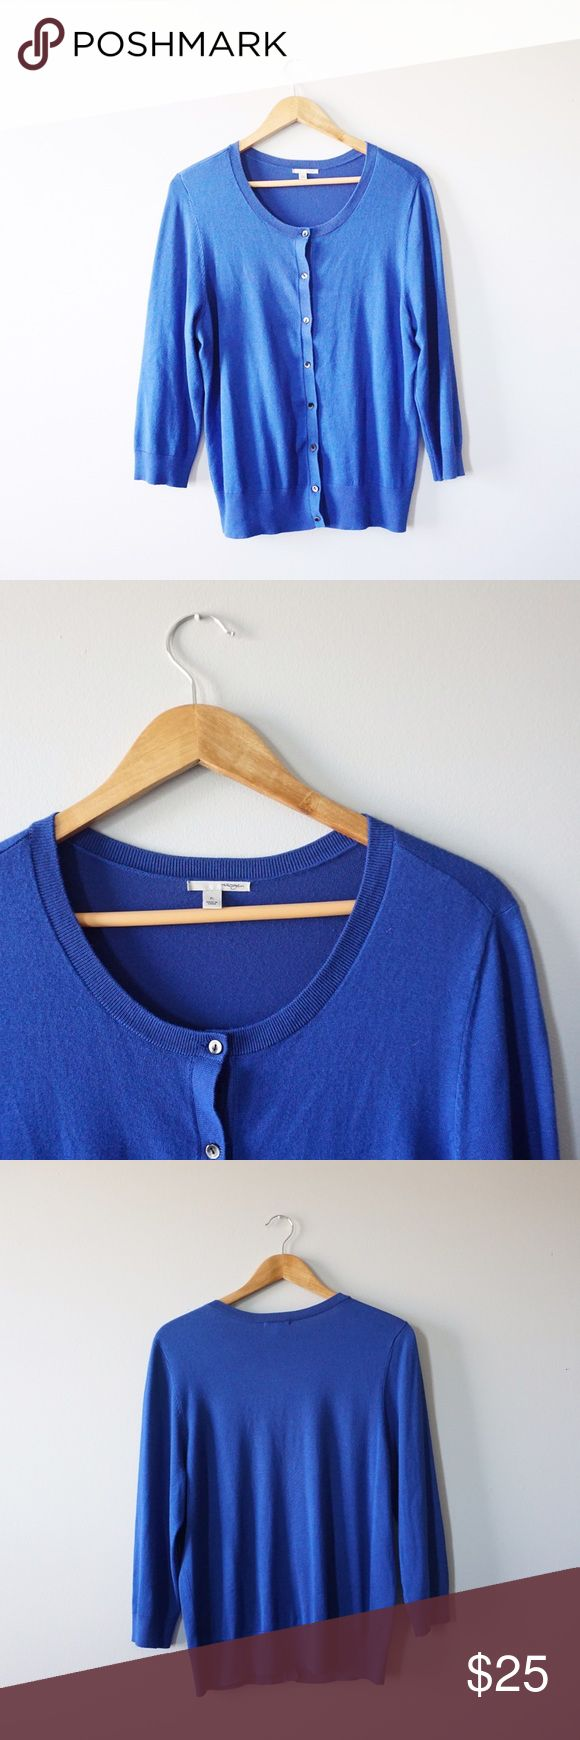 Halogen Royal Blue Cardigan Halogen from Nordstrom royal blue cardigan size XL. Crewneck and 3/4 sleeves. 25 inches long, 19 inch bust all laying flat. 82% viscose 18% nylon. Super soft and in excellent condition. Halogen Sweaters Cardigans